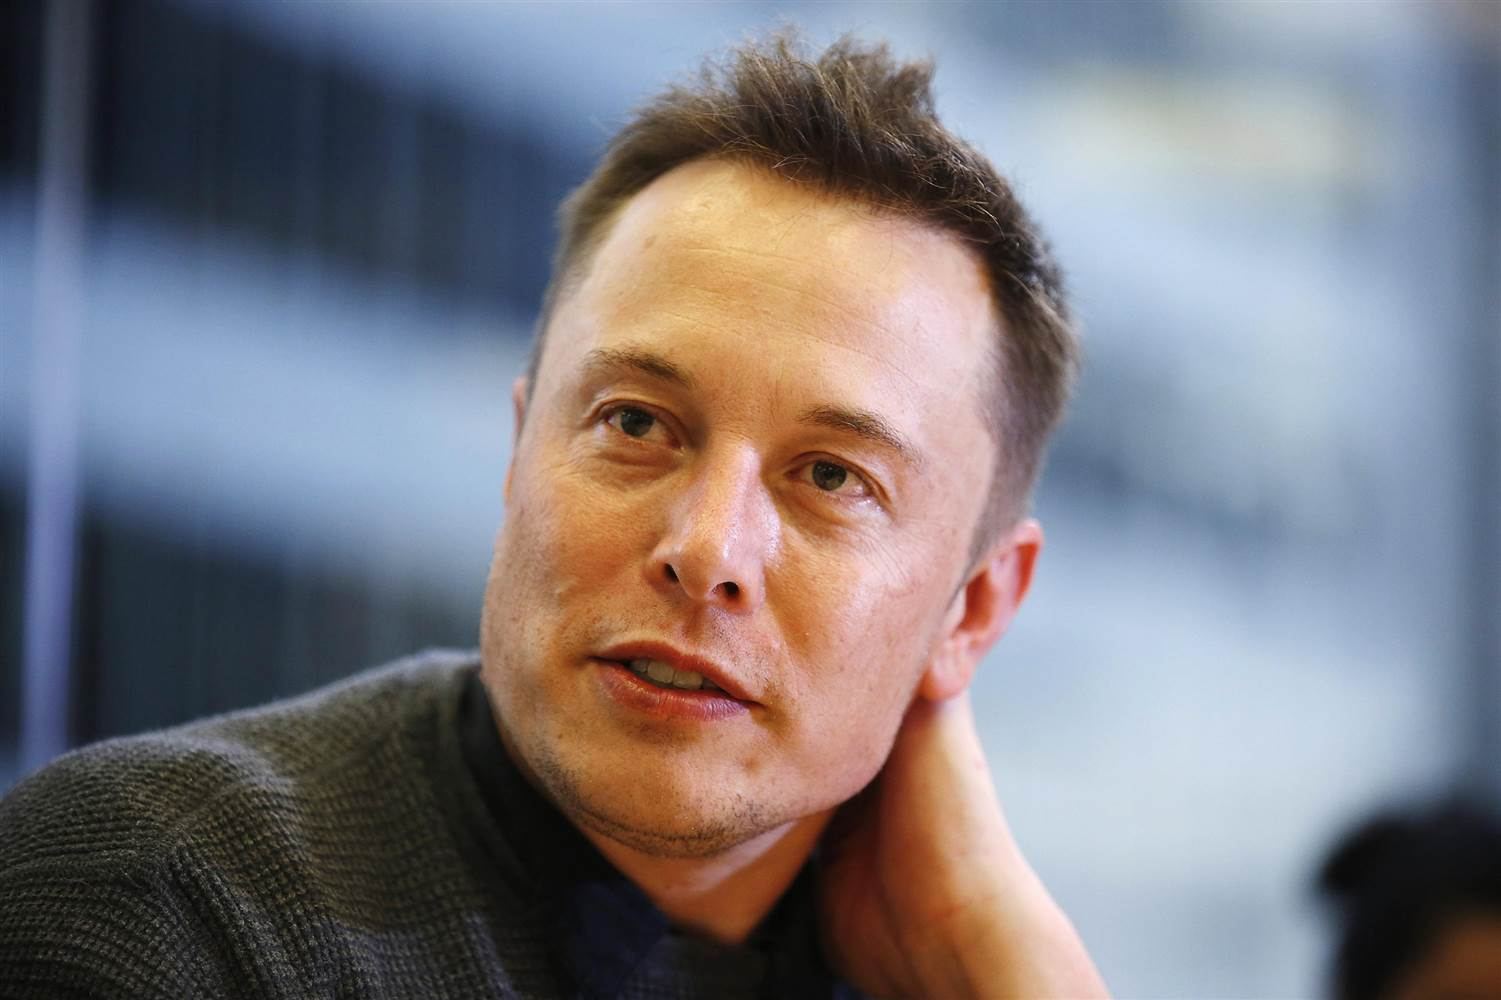 Tesla, Musk pay $40M to settle Tweet charges, Elon resigns as chairman